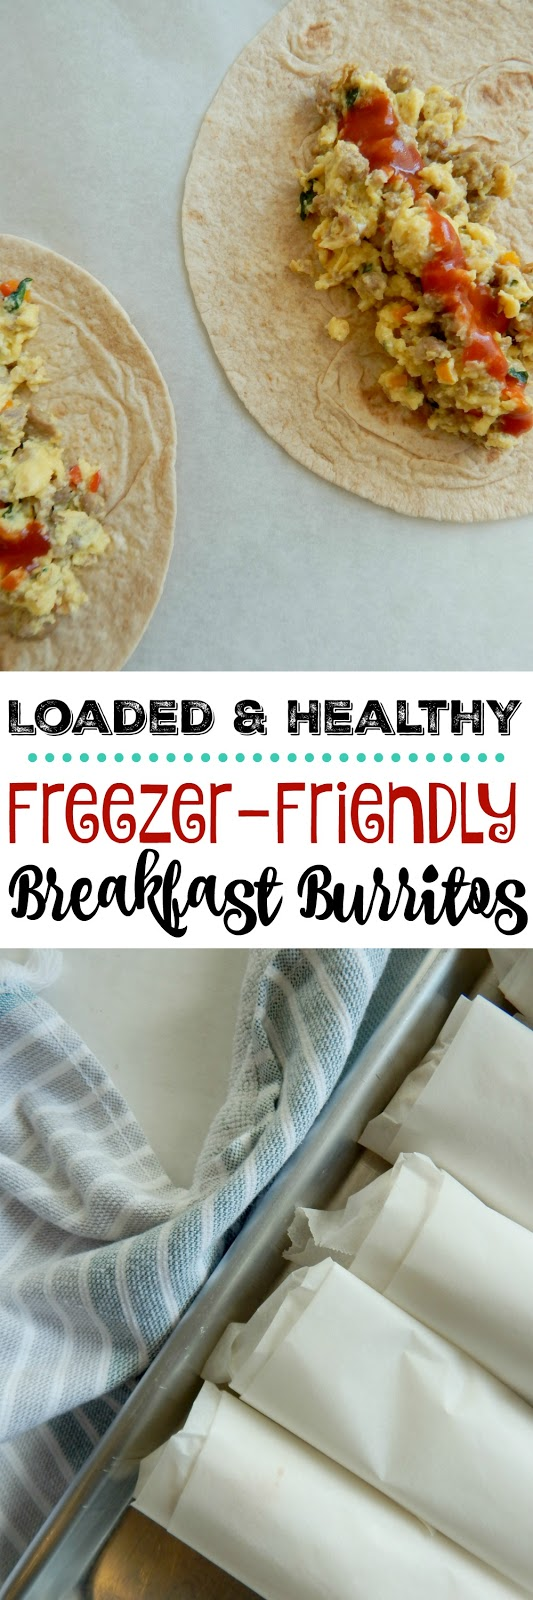 Loaded Healthy Freezer-Friendly Breakfast Burritos...using #IowaEggs! A great, prep-ahead breakfast for kids and adults on busy mornings. Eat fresh or keep in the freezer for up to 2 months.  Eat a healthier loaded breakfast with eggs! (sweetandsavoryfood.com)